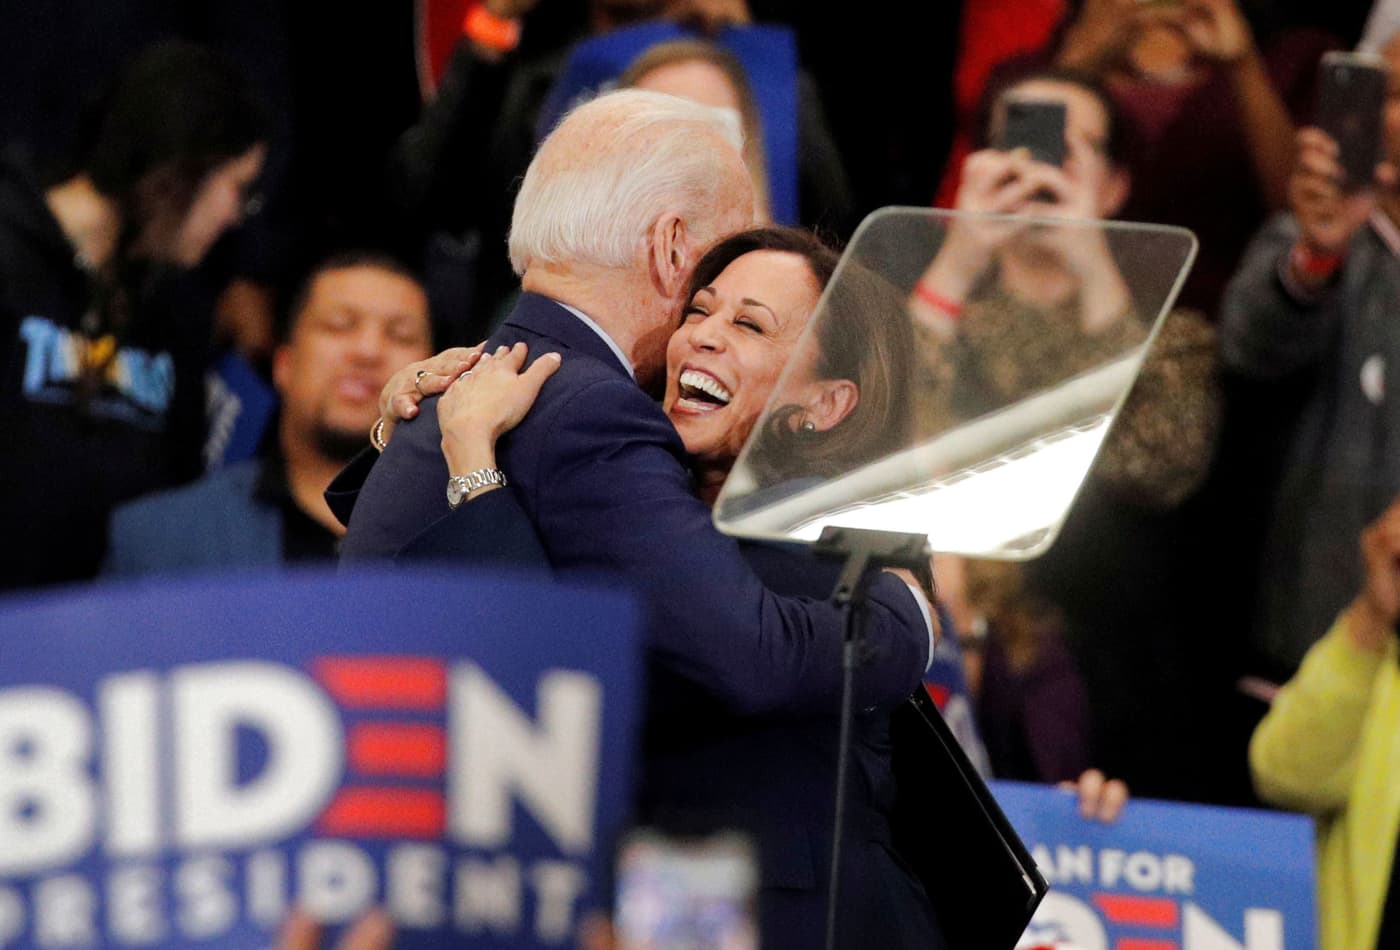 Kamala Harris brings anti-Trump energy to Biden's ticket, but her law enforcement record poses risks